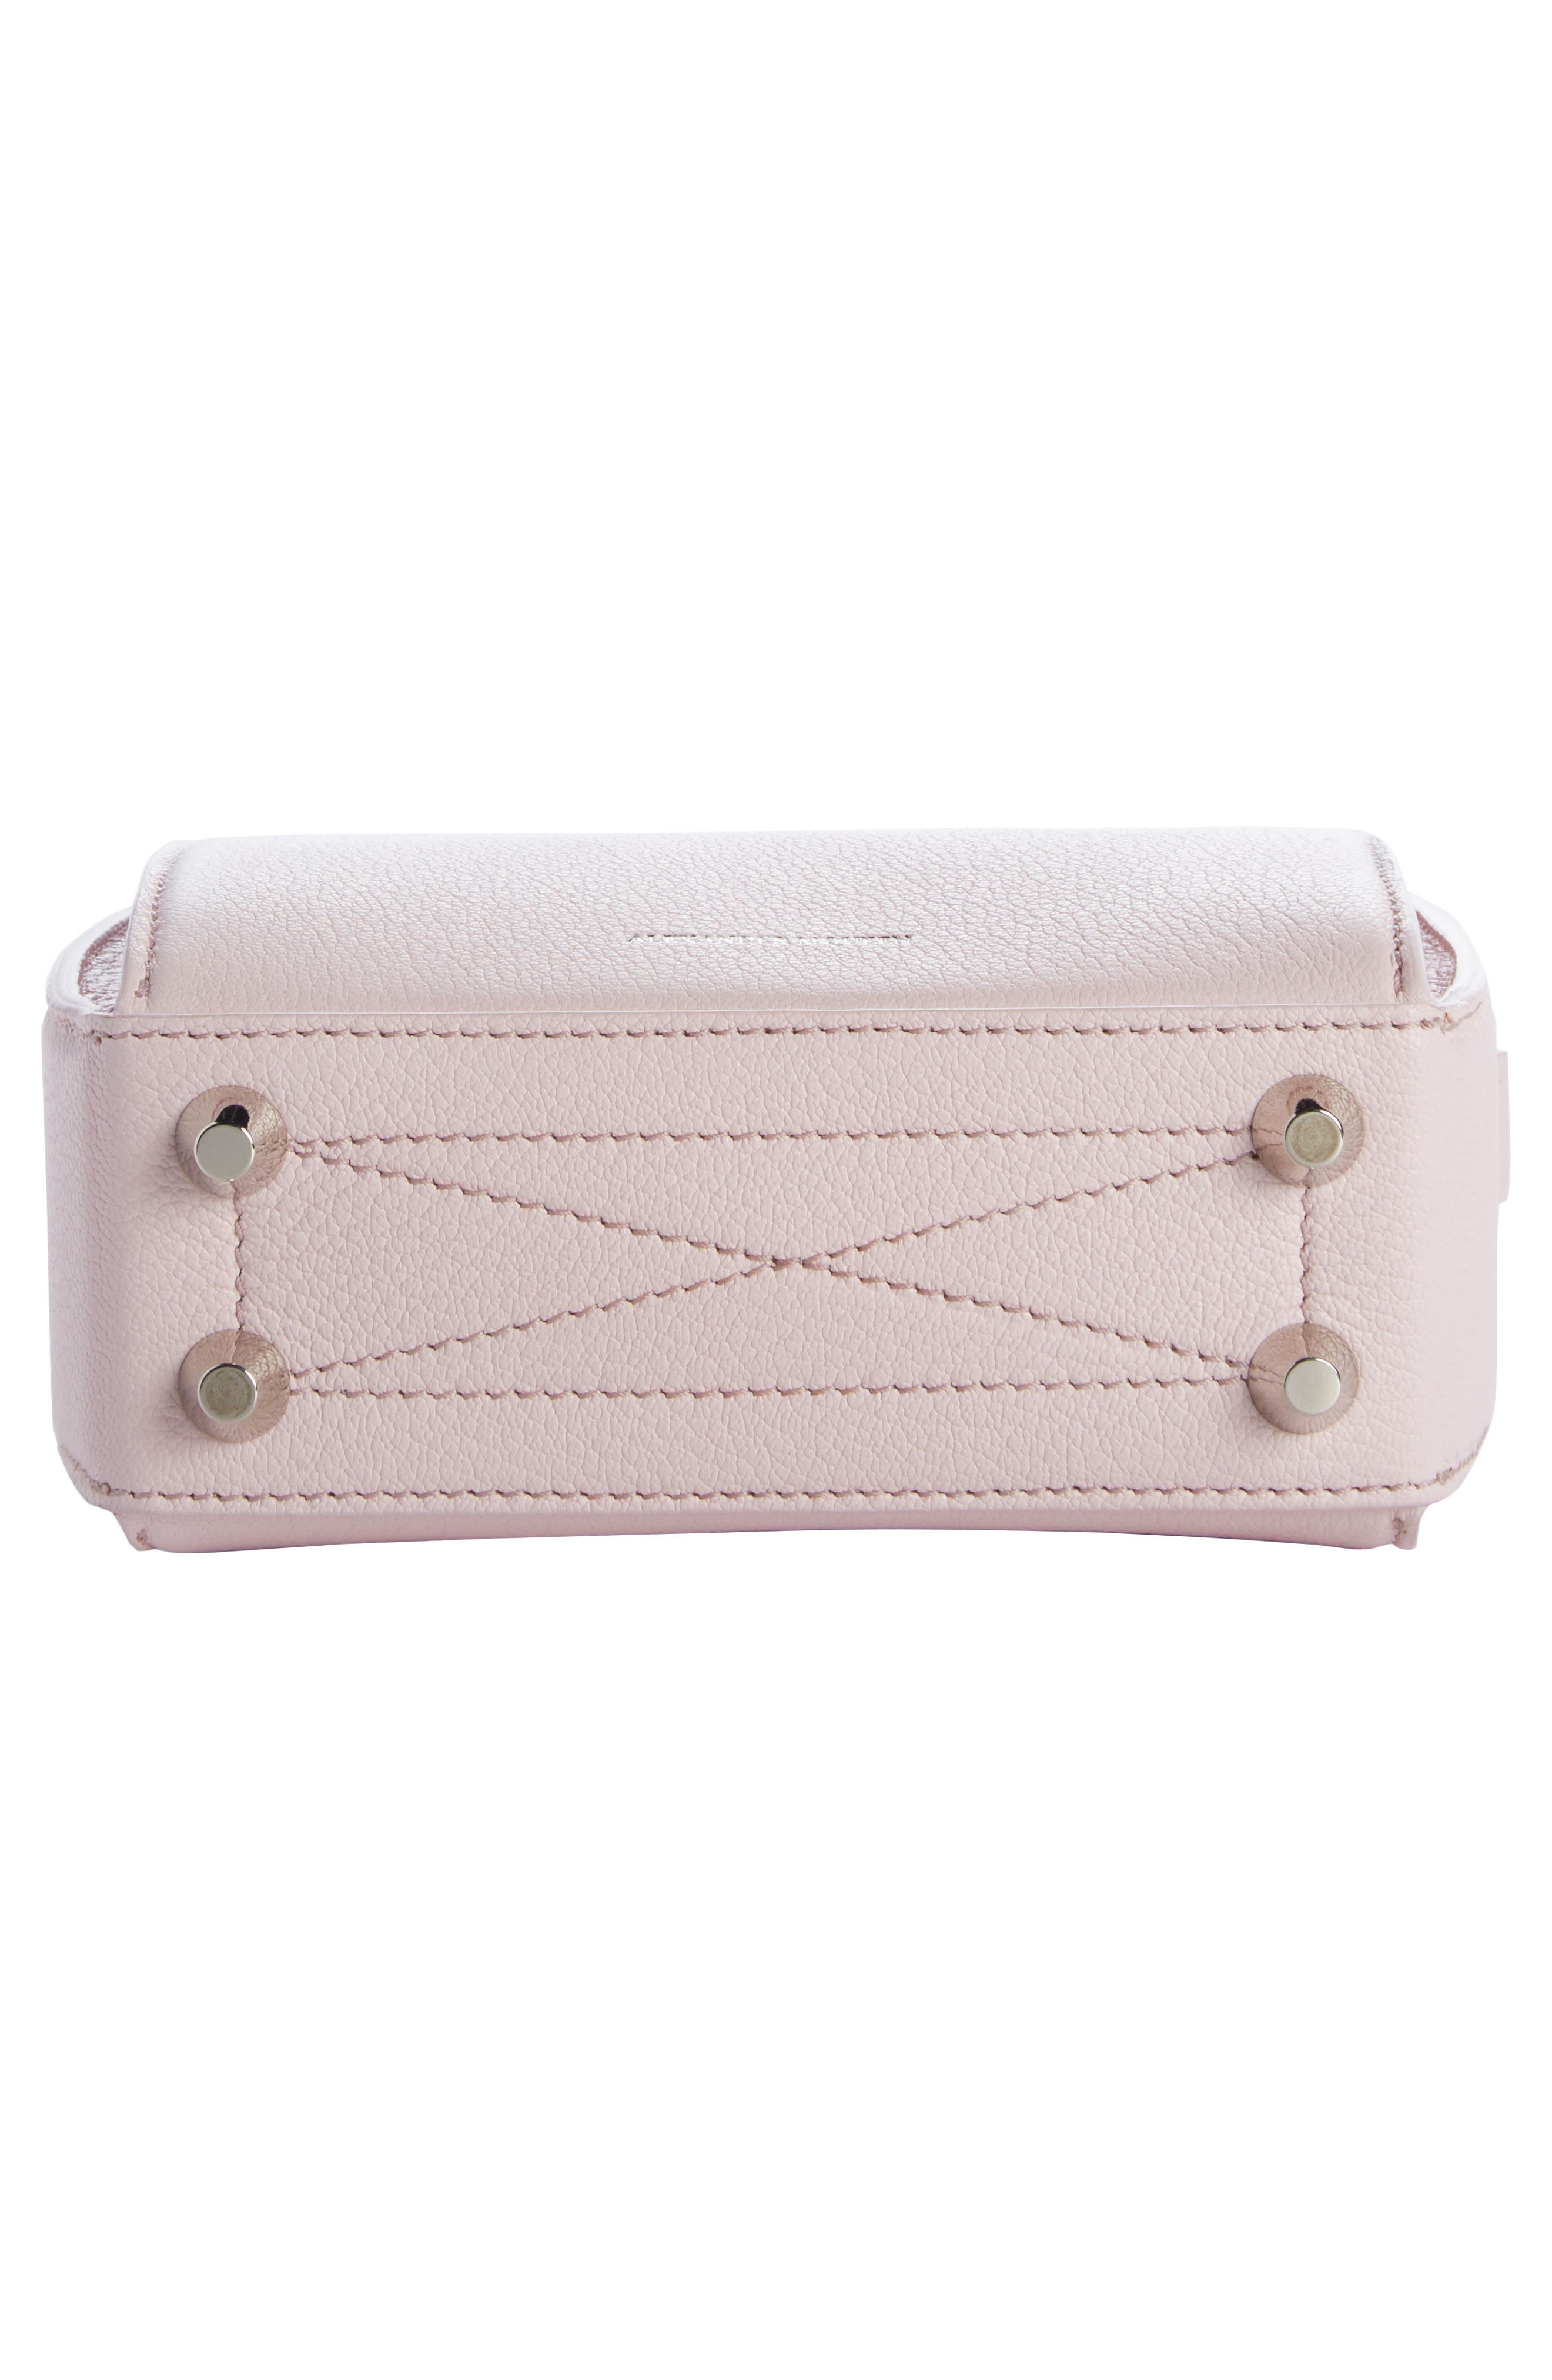 Box Bag 16 Leather Bag,                             Alternate thumbnail 5, color,                             Baby Pink/ Ivory